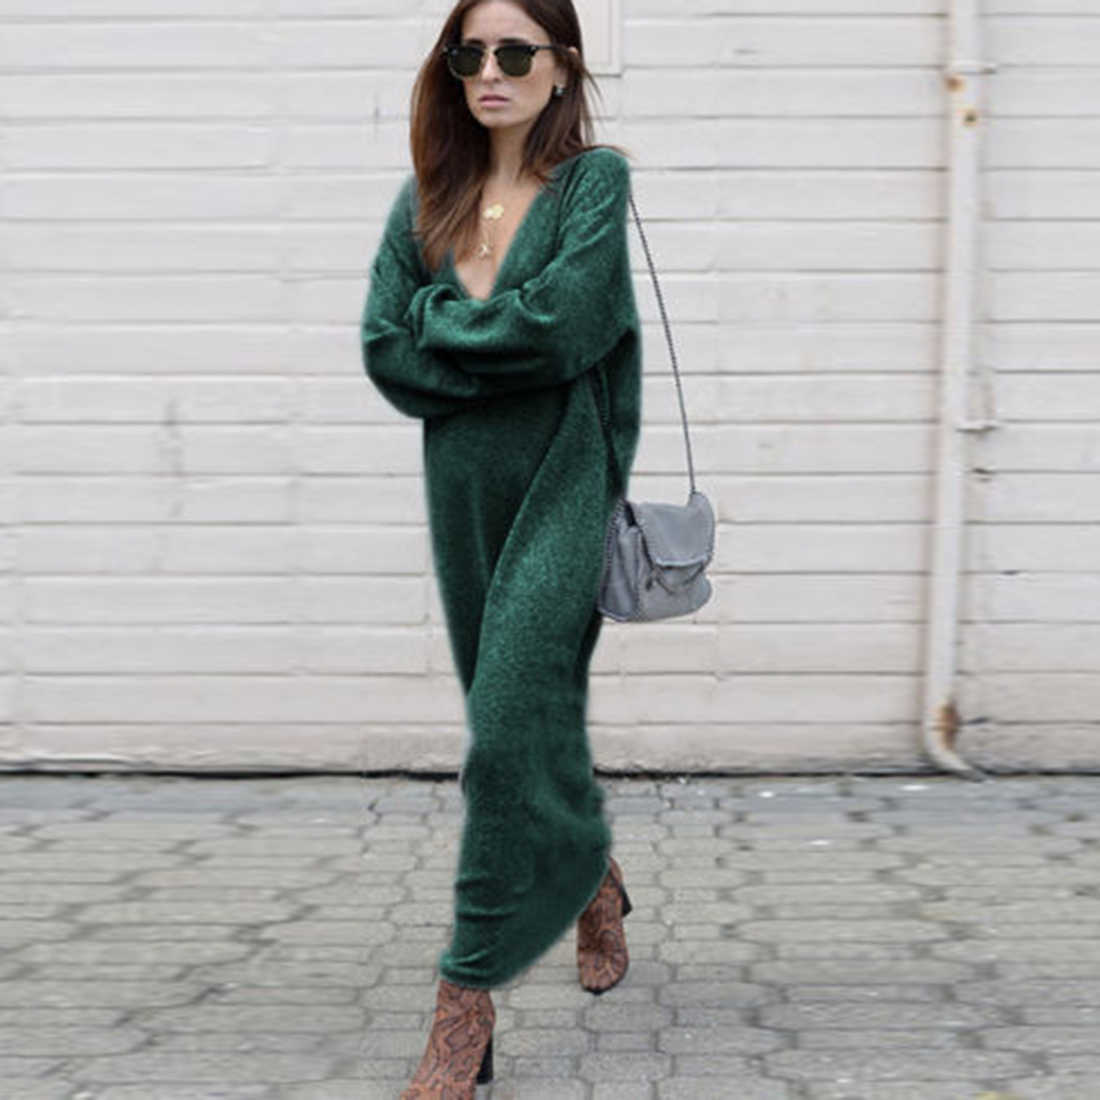 ca57fc3e65c Autumn Winter Warm Knitted Long Sweater Women Solid v Neck Long Sleeve  Casual Loose pulover feminino